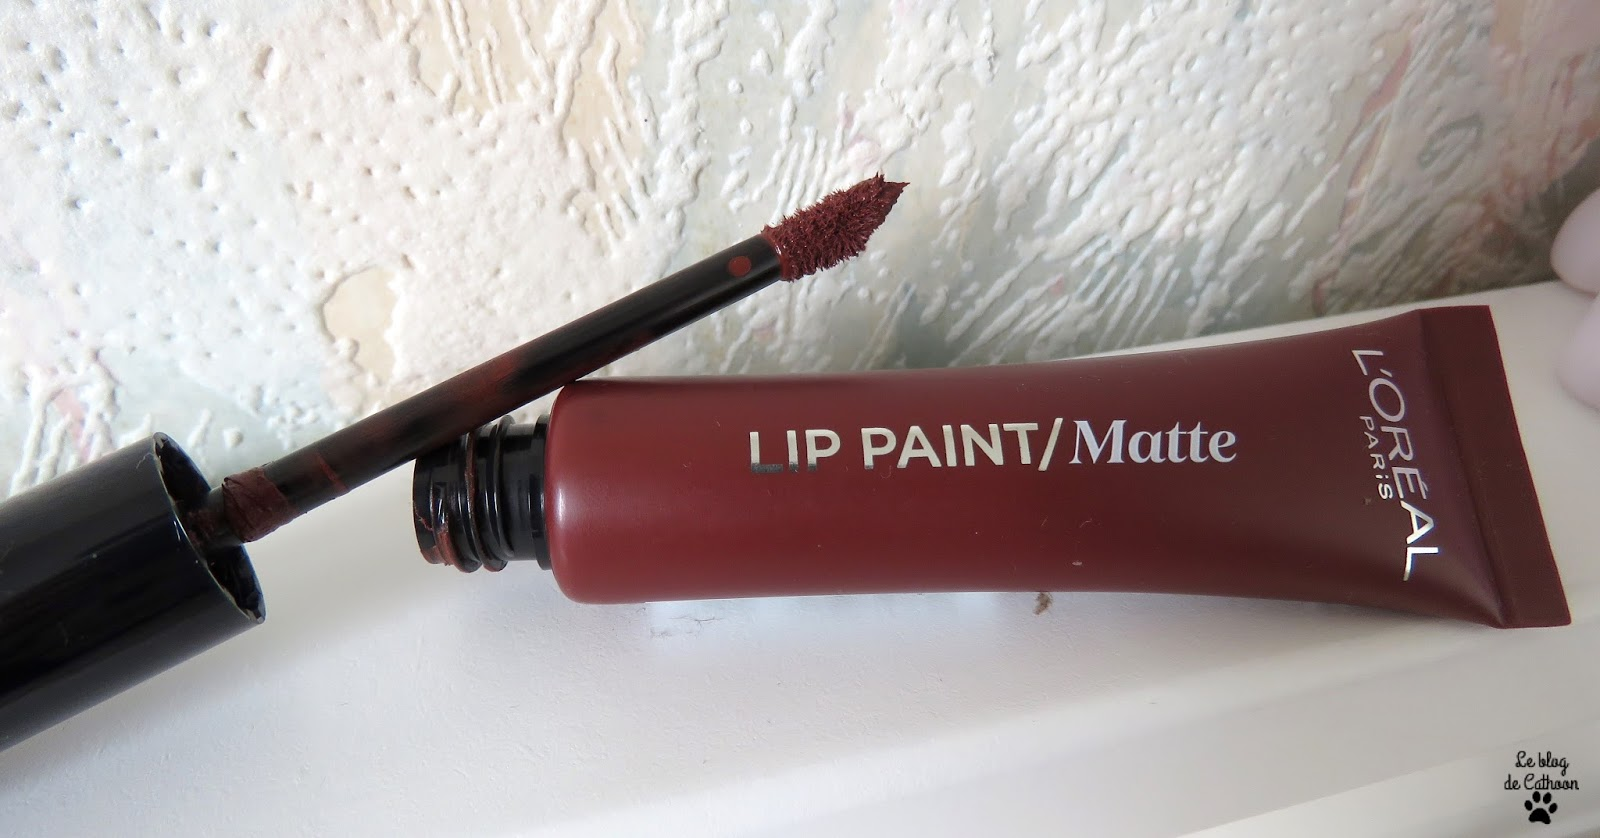 Lip Paint Matte - Rouge à Lèvres Infaillible - L'Oréal - 213 Stripped Brown